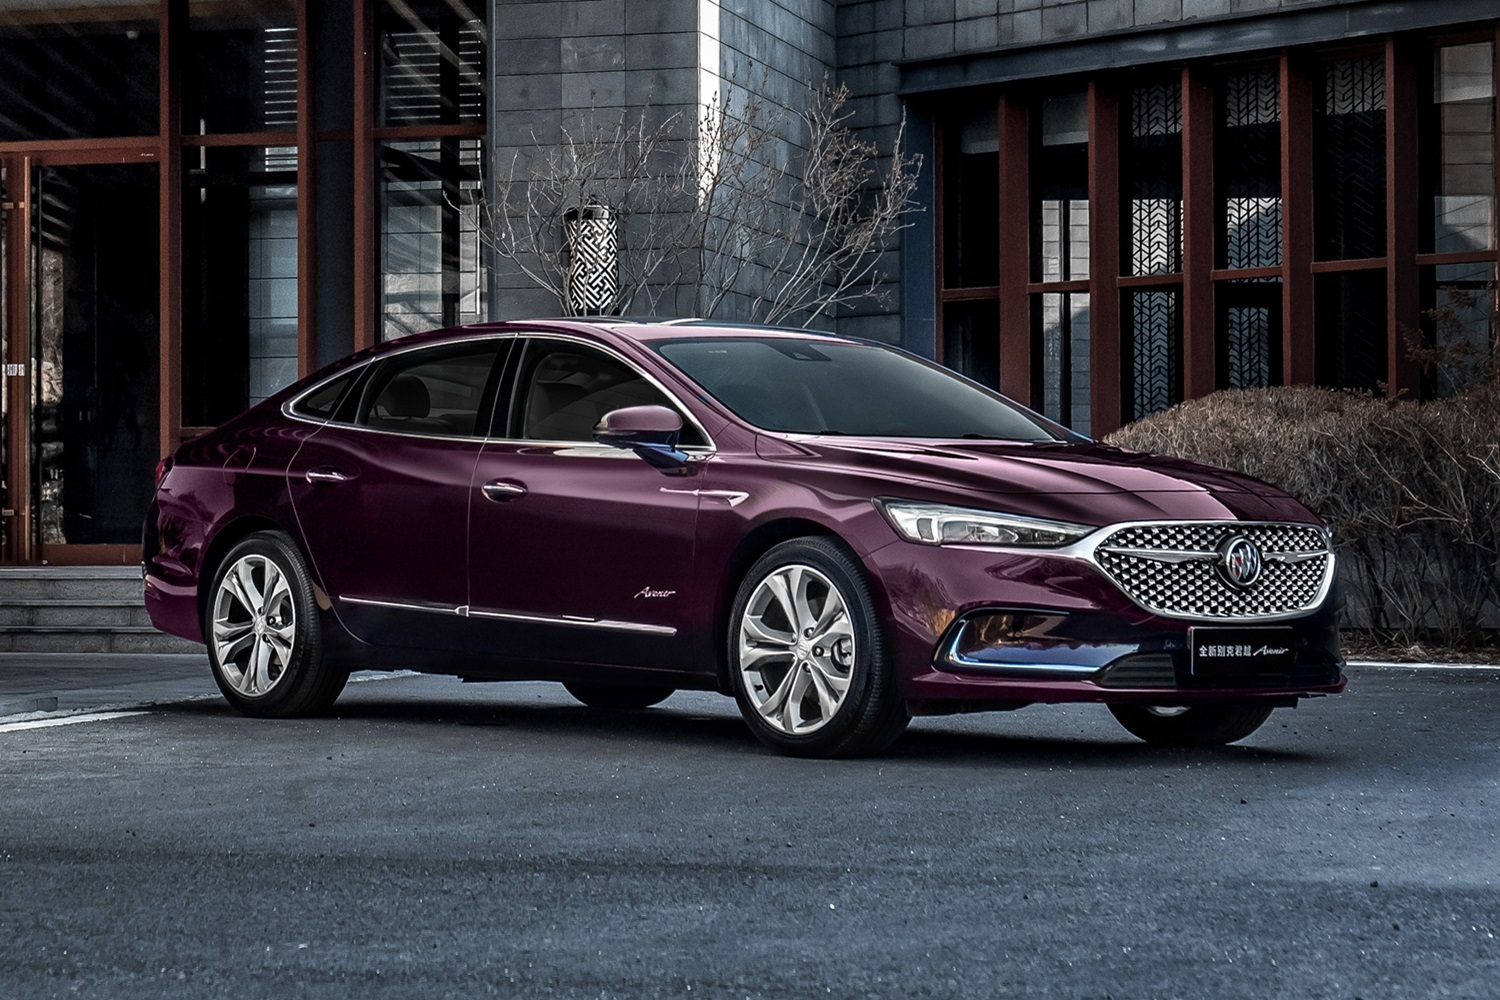 2021 Buick Lacrosse Gets More Refined Than Ever | Gm Authority New 2021 Buick Lacrosse Mpg, Engine, Price